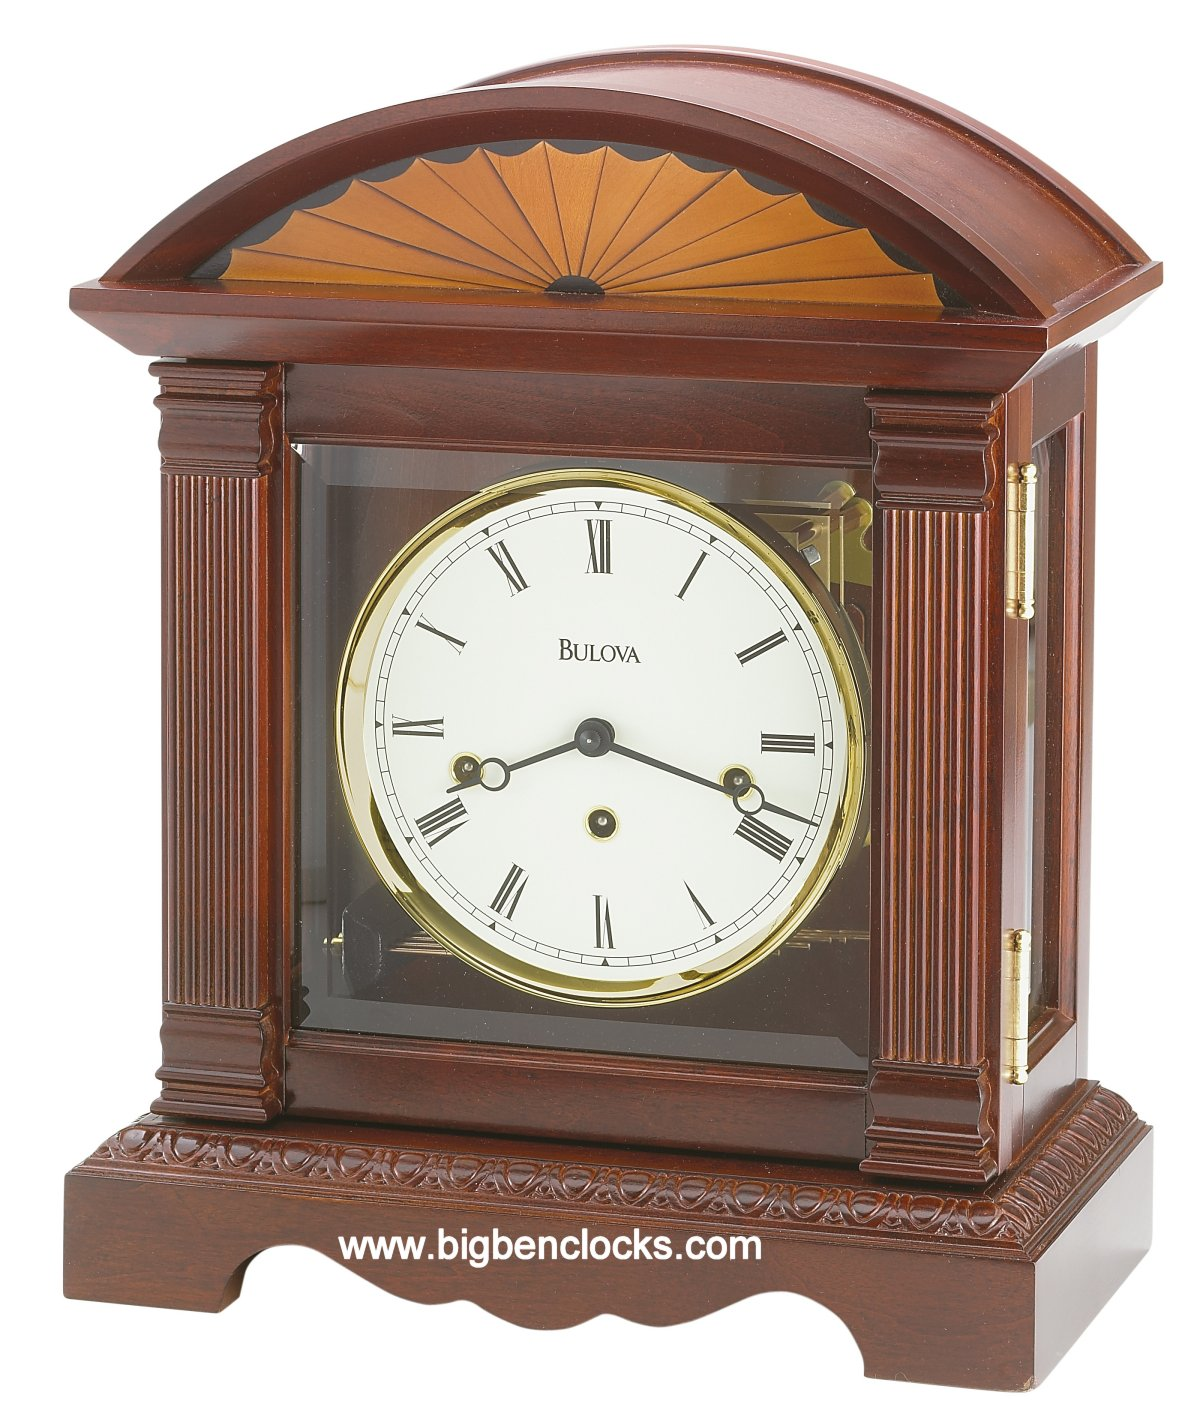 Bulova Mantel Clock | Modern Mantel Clocks | Chiming Mantel Clocks for Sale